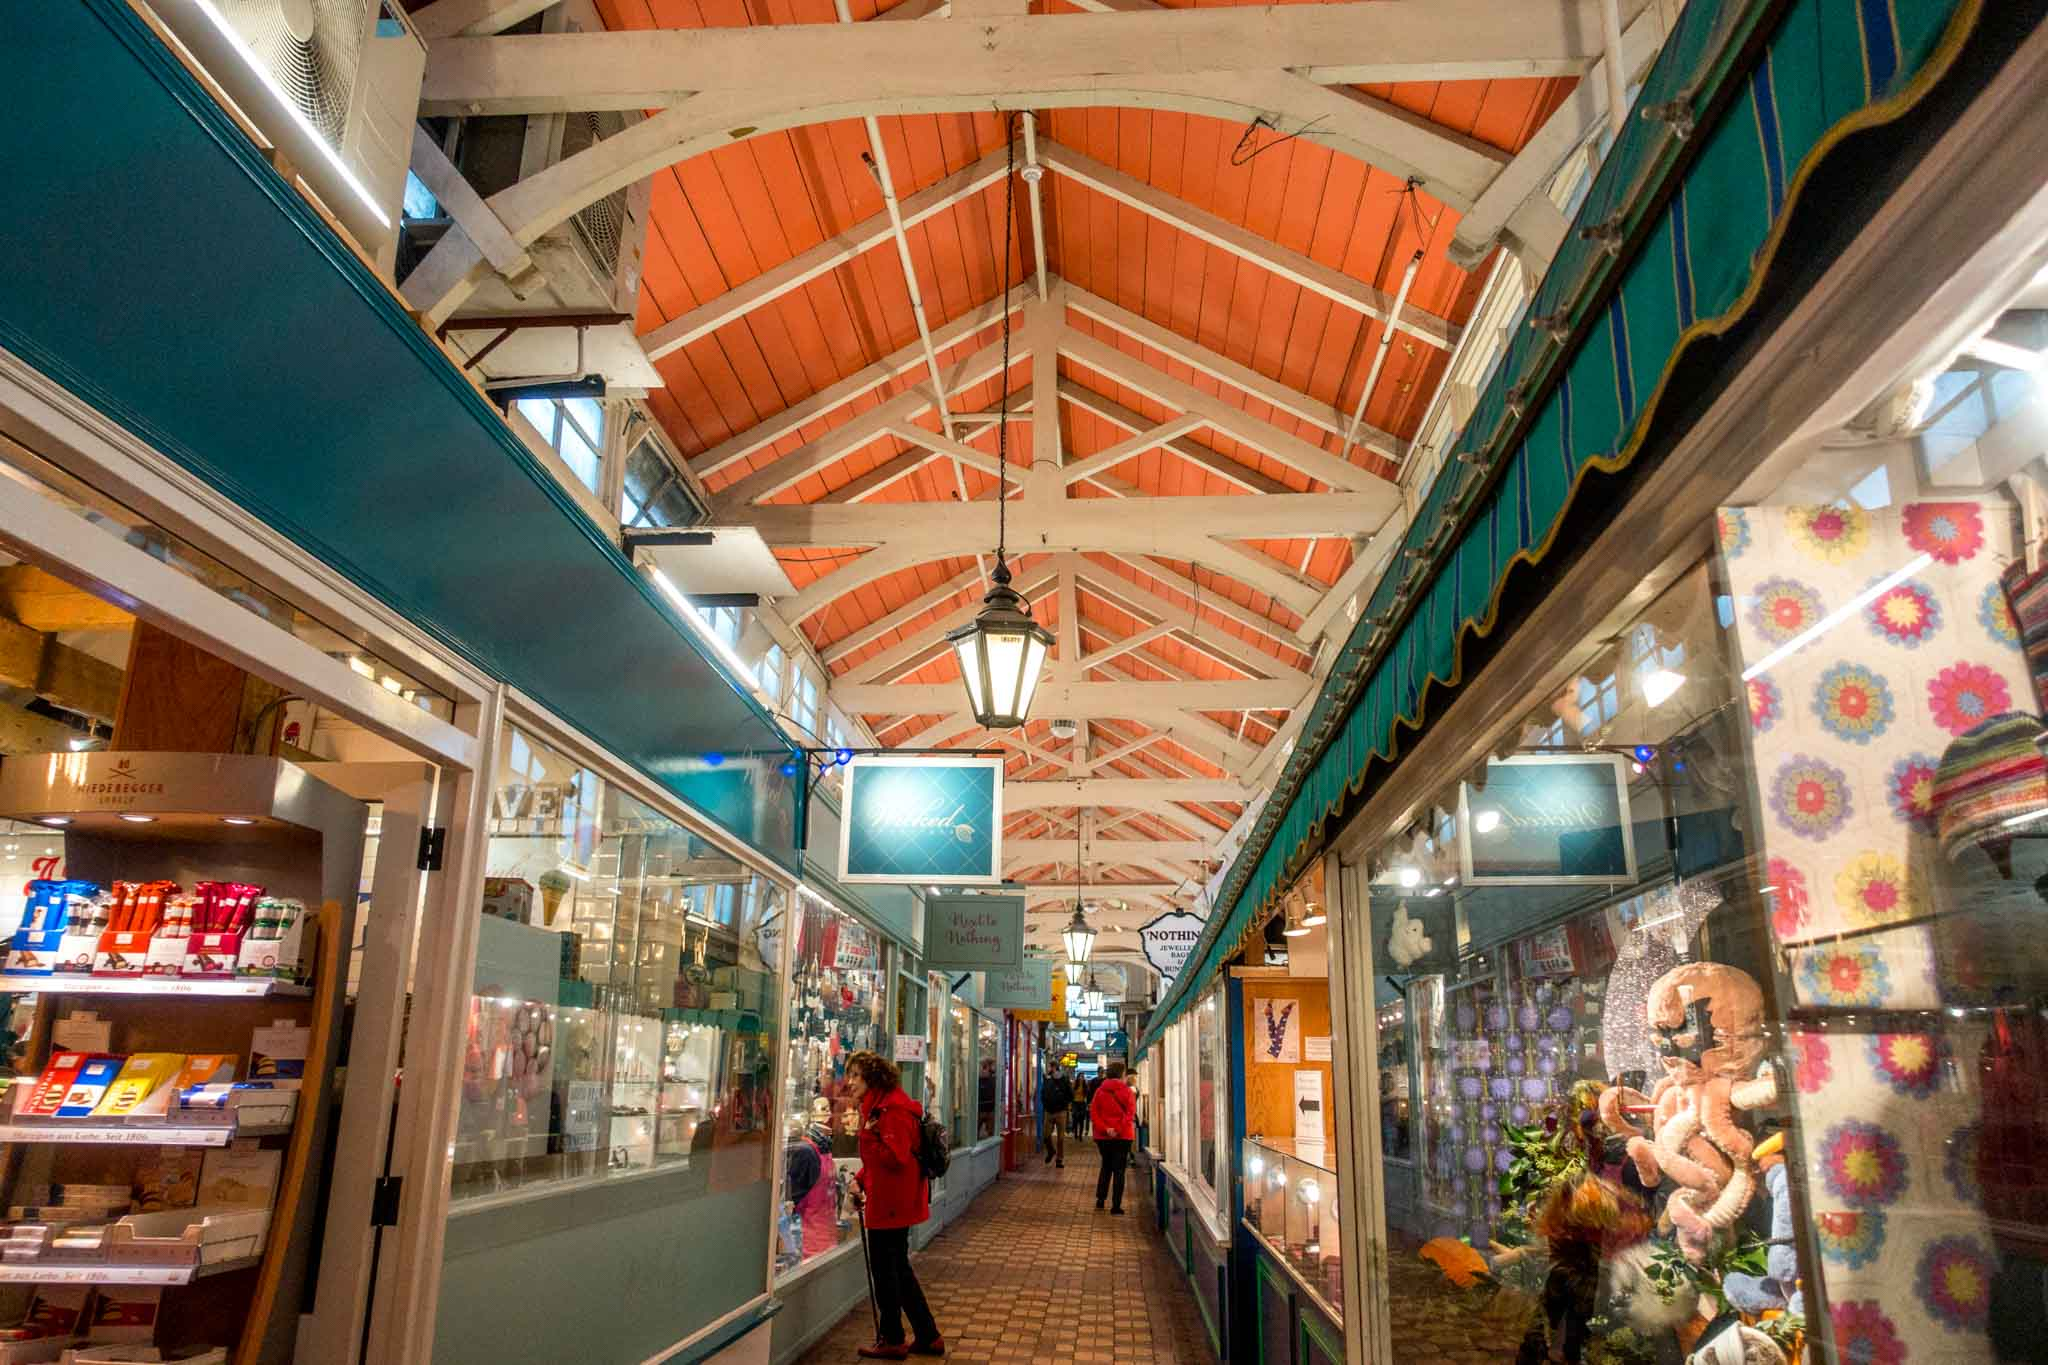 The Oxford Covered Market, founded in 1774, is one of the historic things to see in Oxford